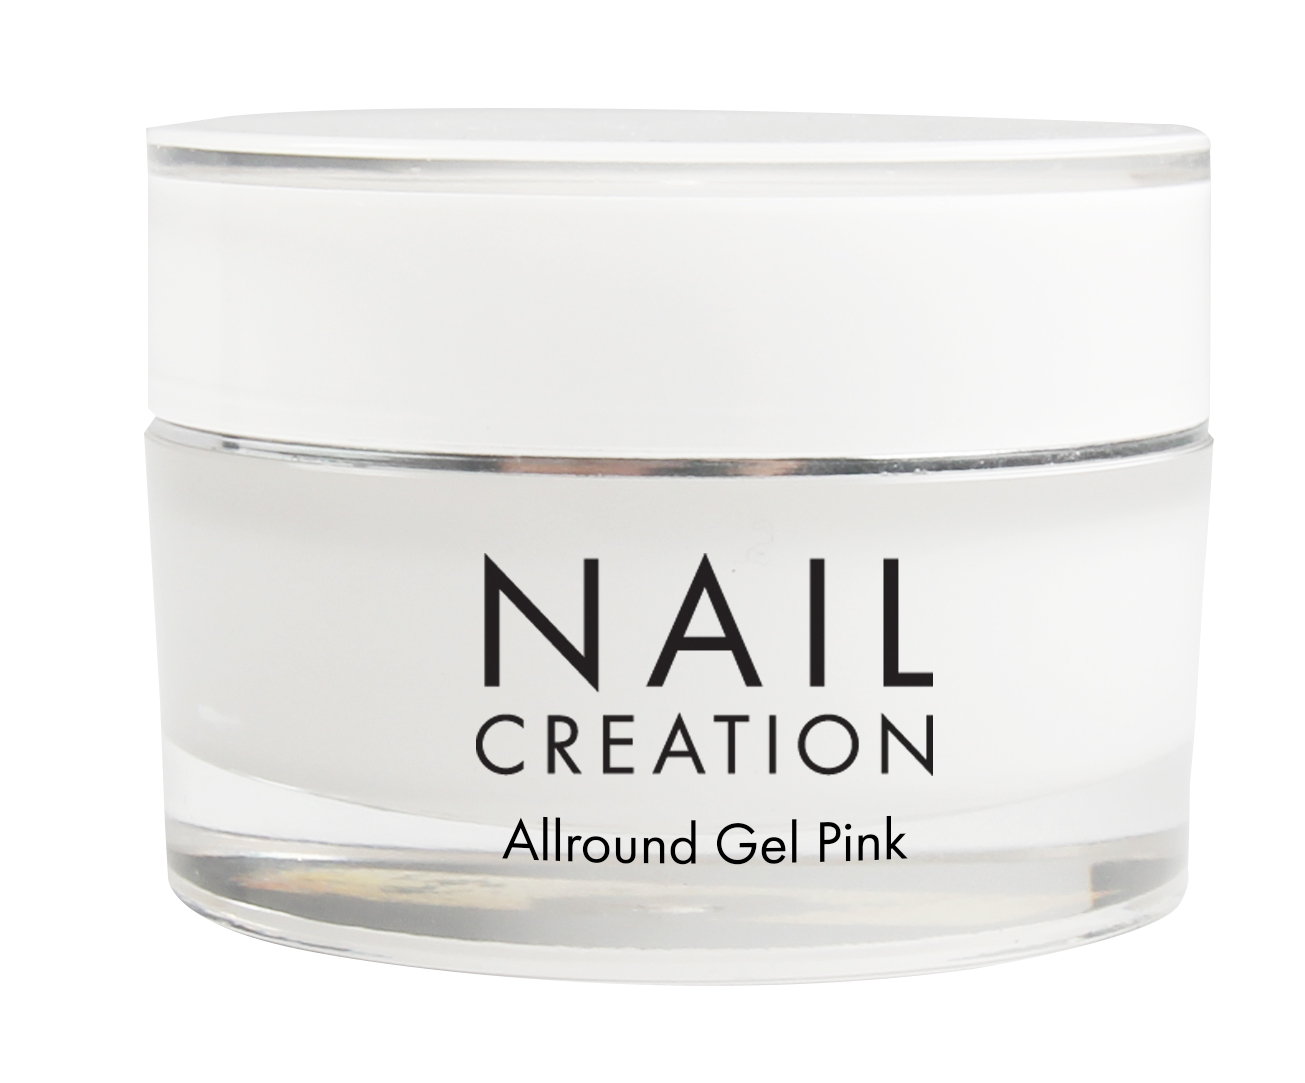 Afbeelding van Nail Creation Allround Gel - Pink 50 ml